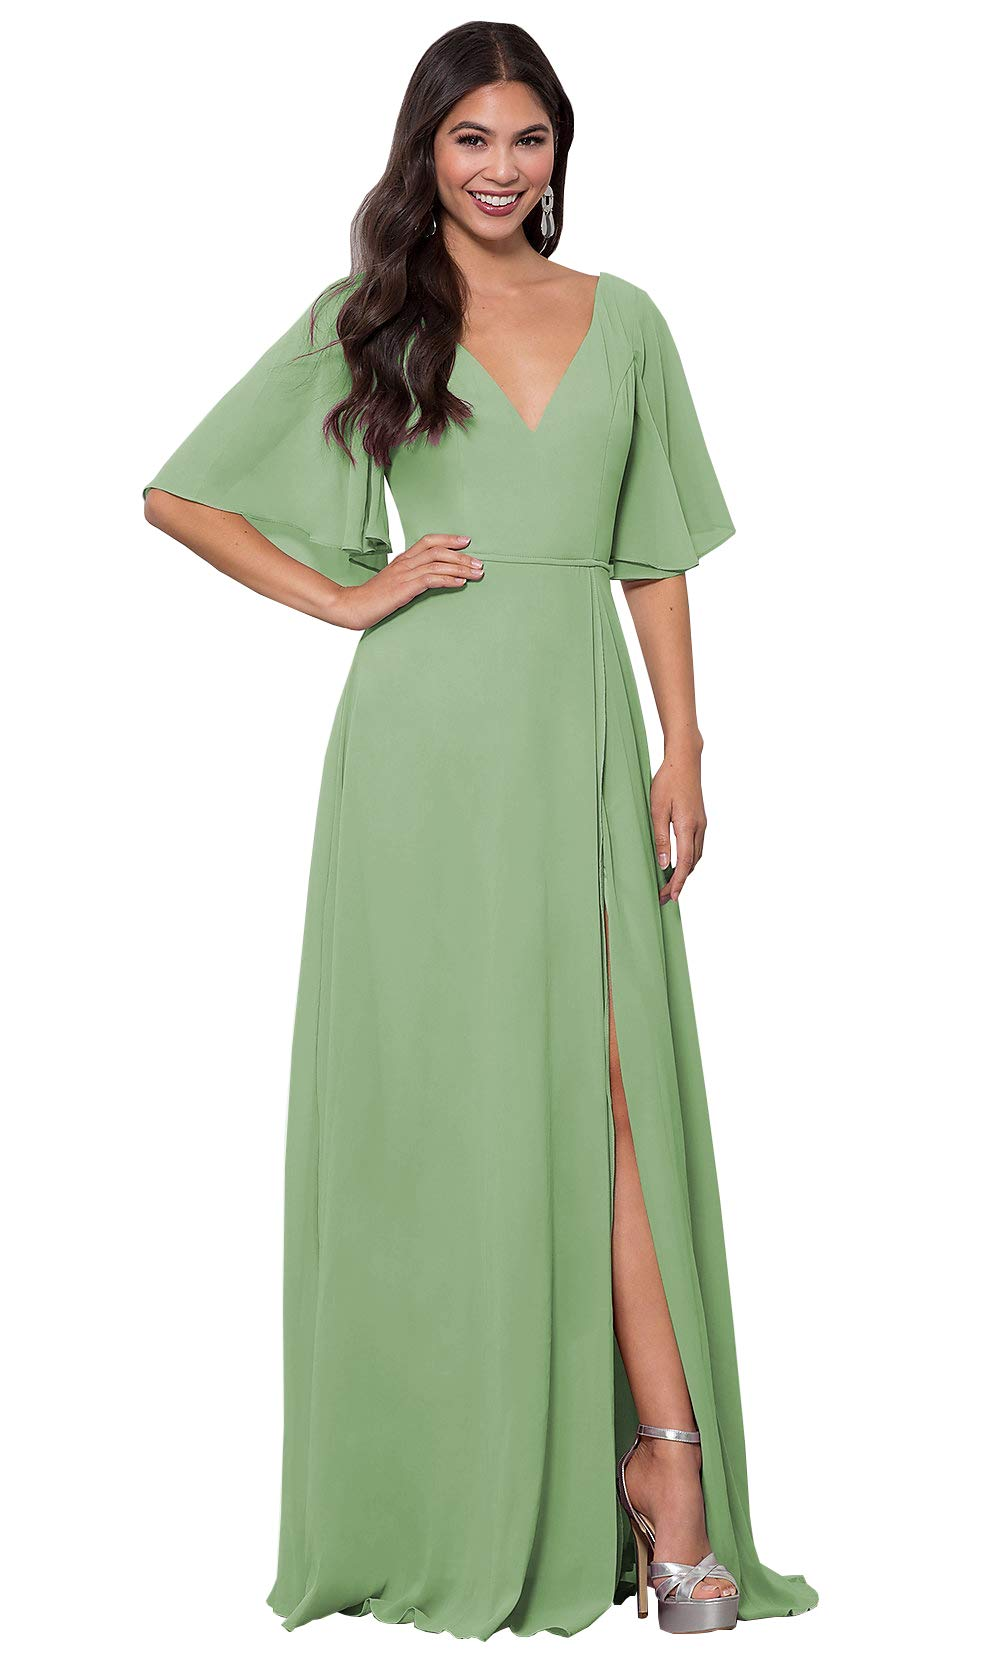 Wedding Guest Dresses With Sleeves.Ufashion Women S V Neck Chiffon Slit Bridesmaid Dresses With Sleeves Wedding Guest Dress Size 6 Dusty Sage